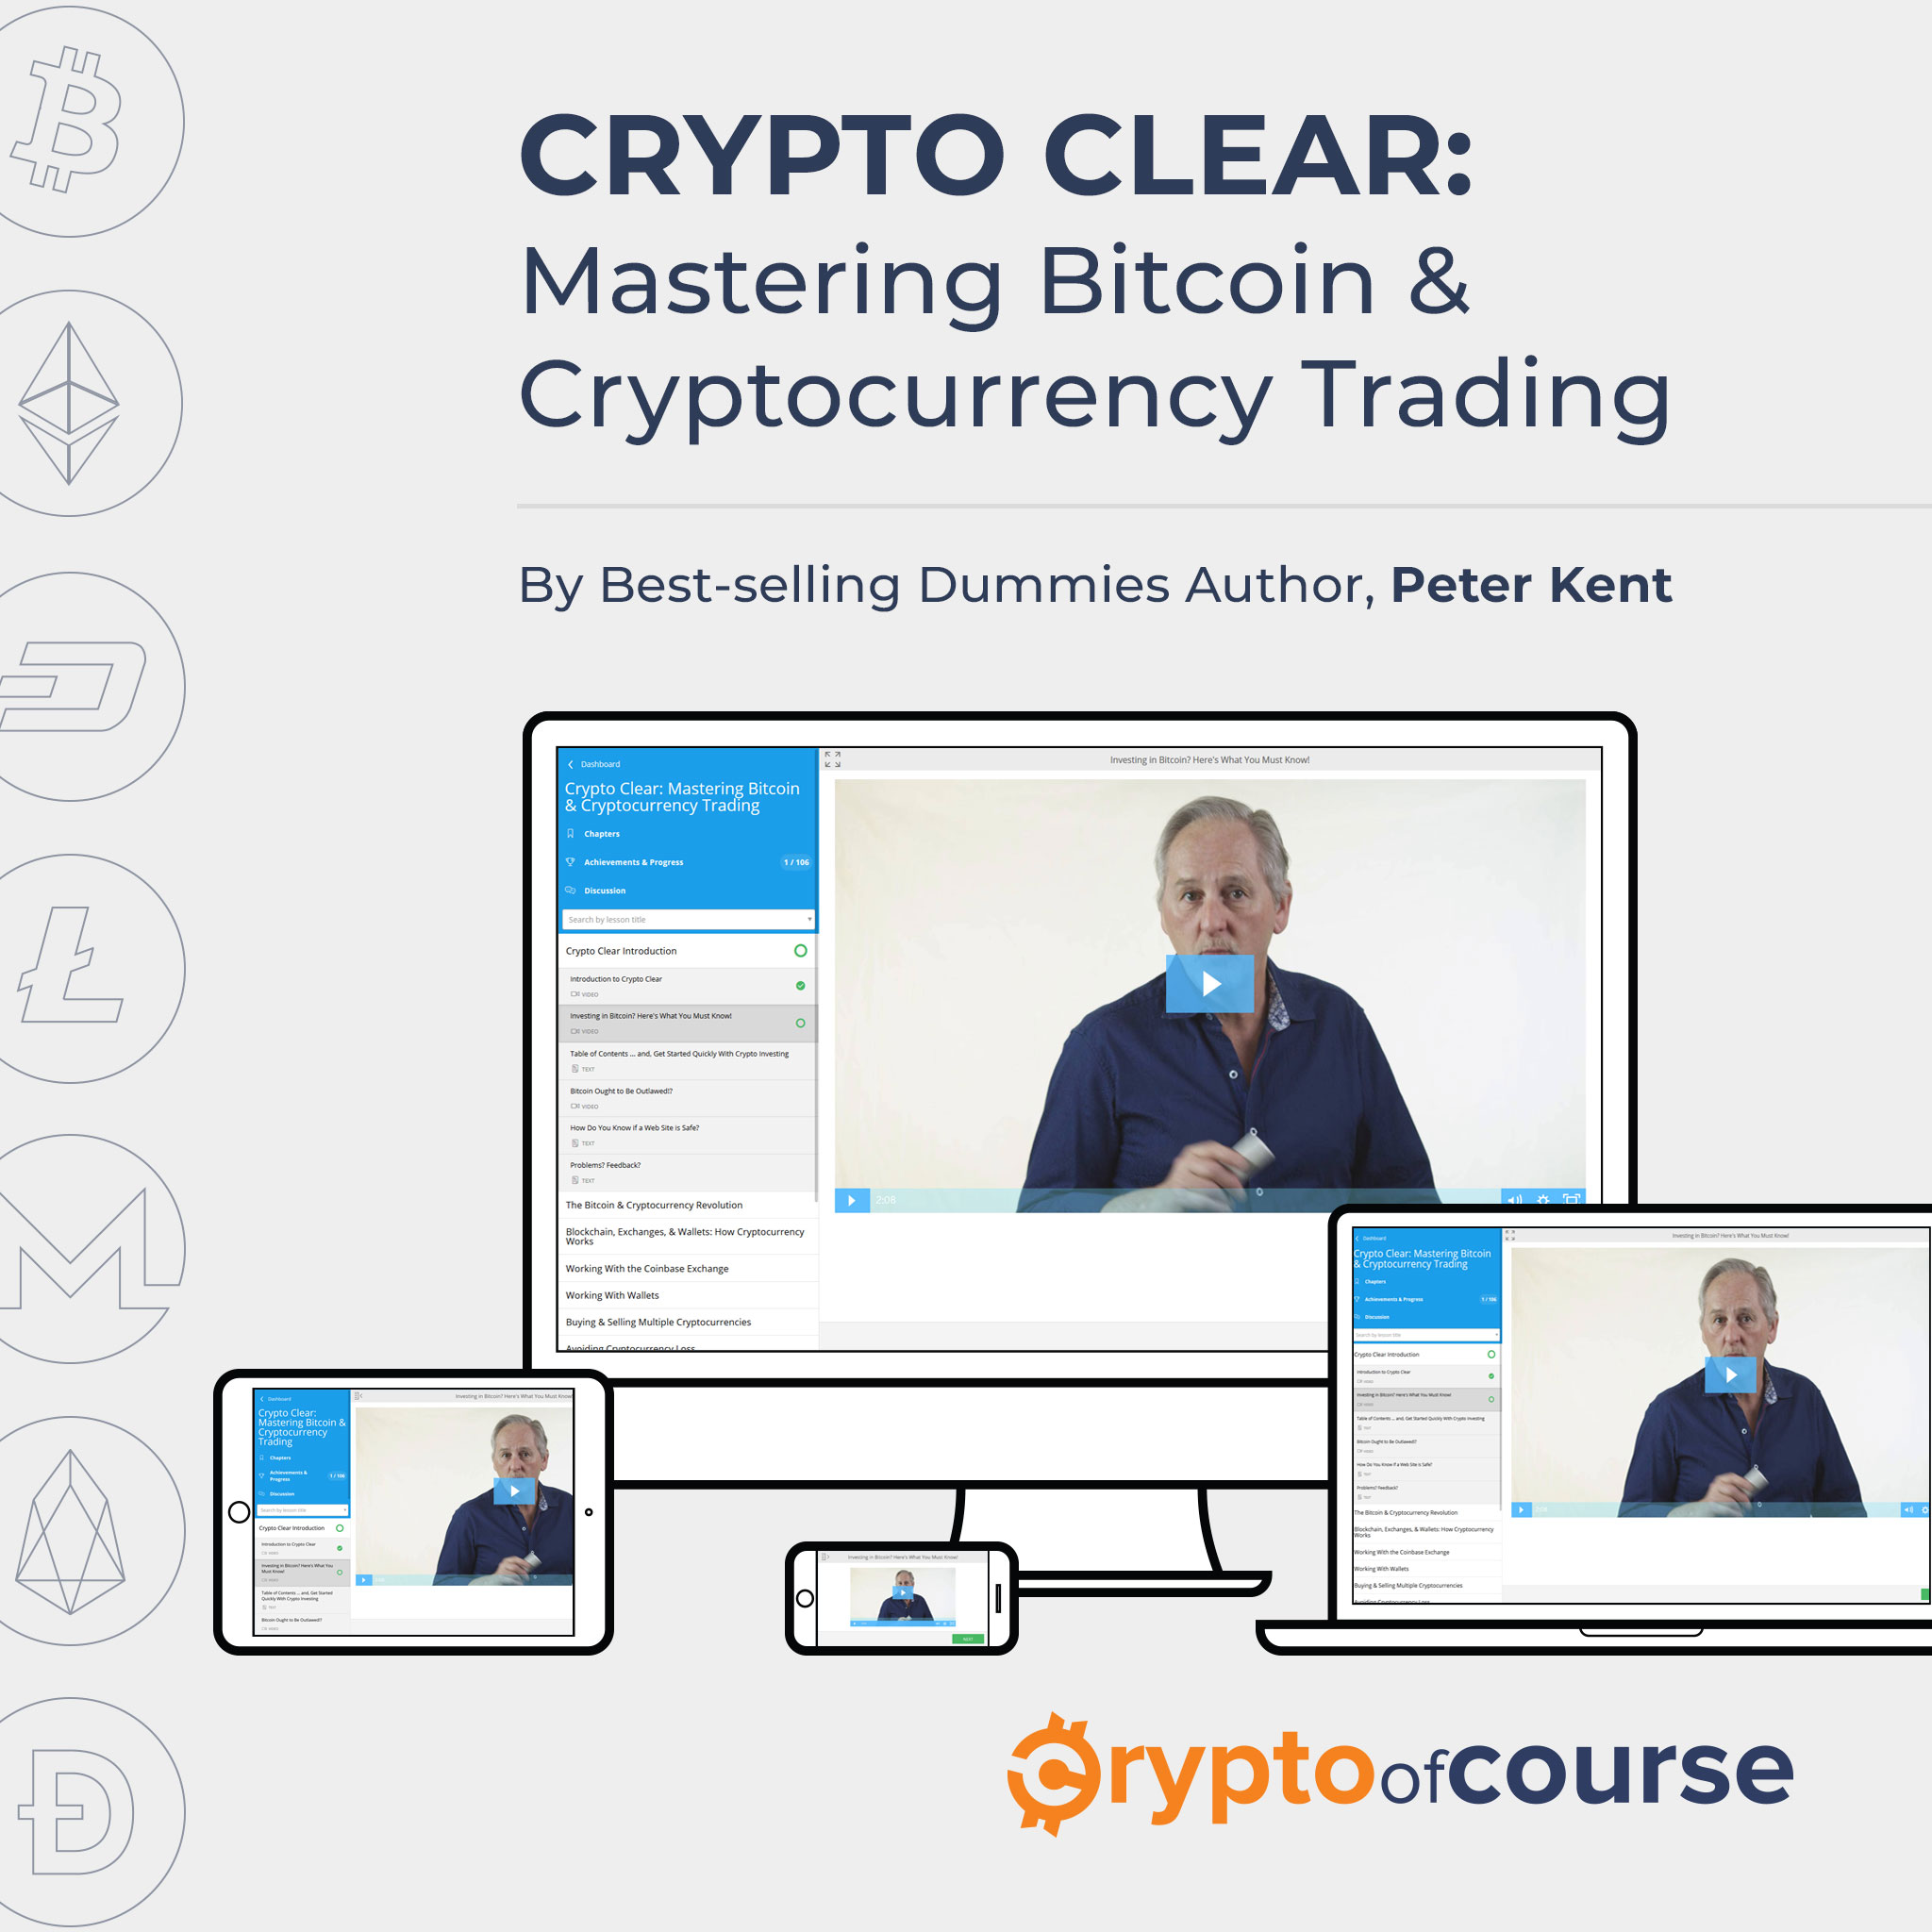 Crypto Clear: Mastering Bitcoin & Cryptocurrency Trading [VIDEO COURSE] [Online Code]